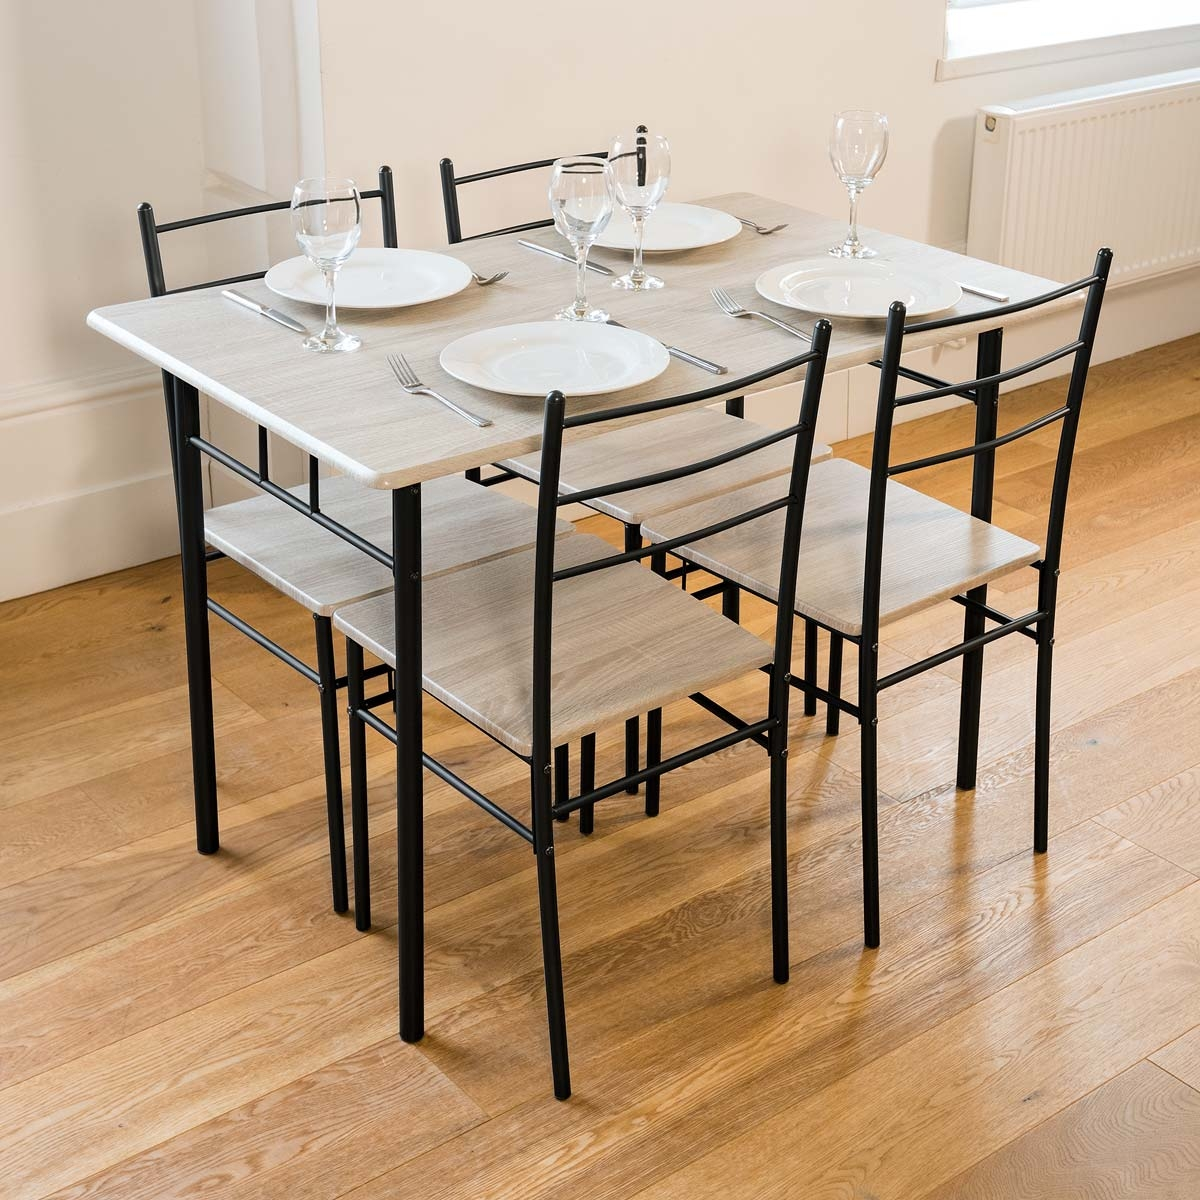 Dining Room Chairs Set Of 4 Details About 5 Piece Modern Dining Table And 4 Chairs Set Textured Wood Effect Table Top